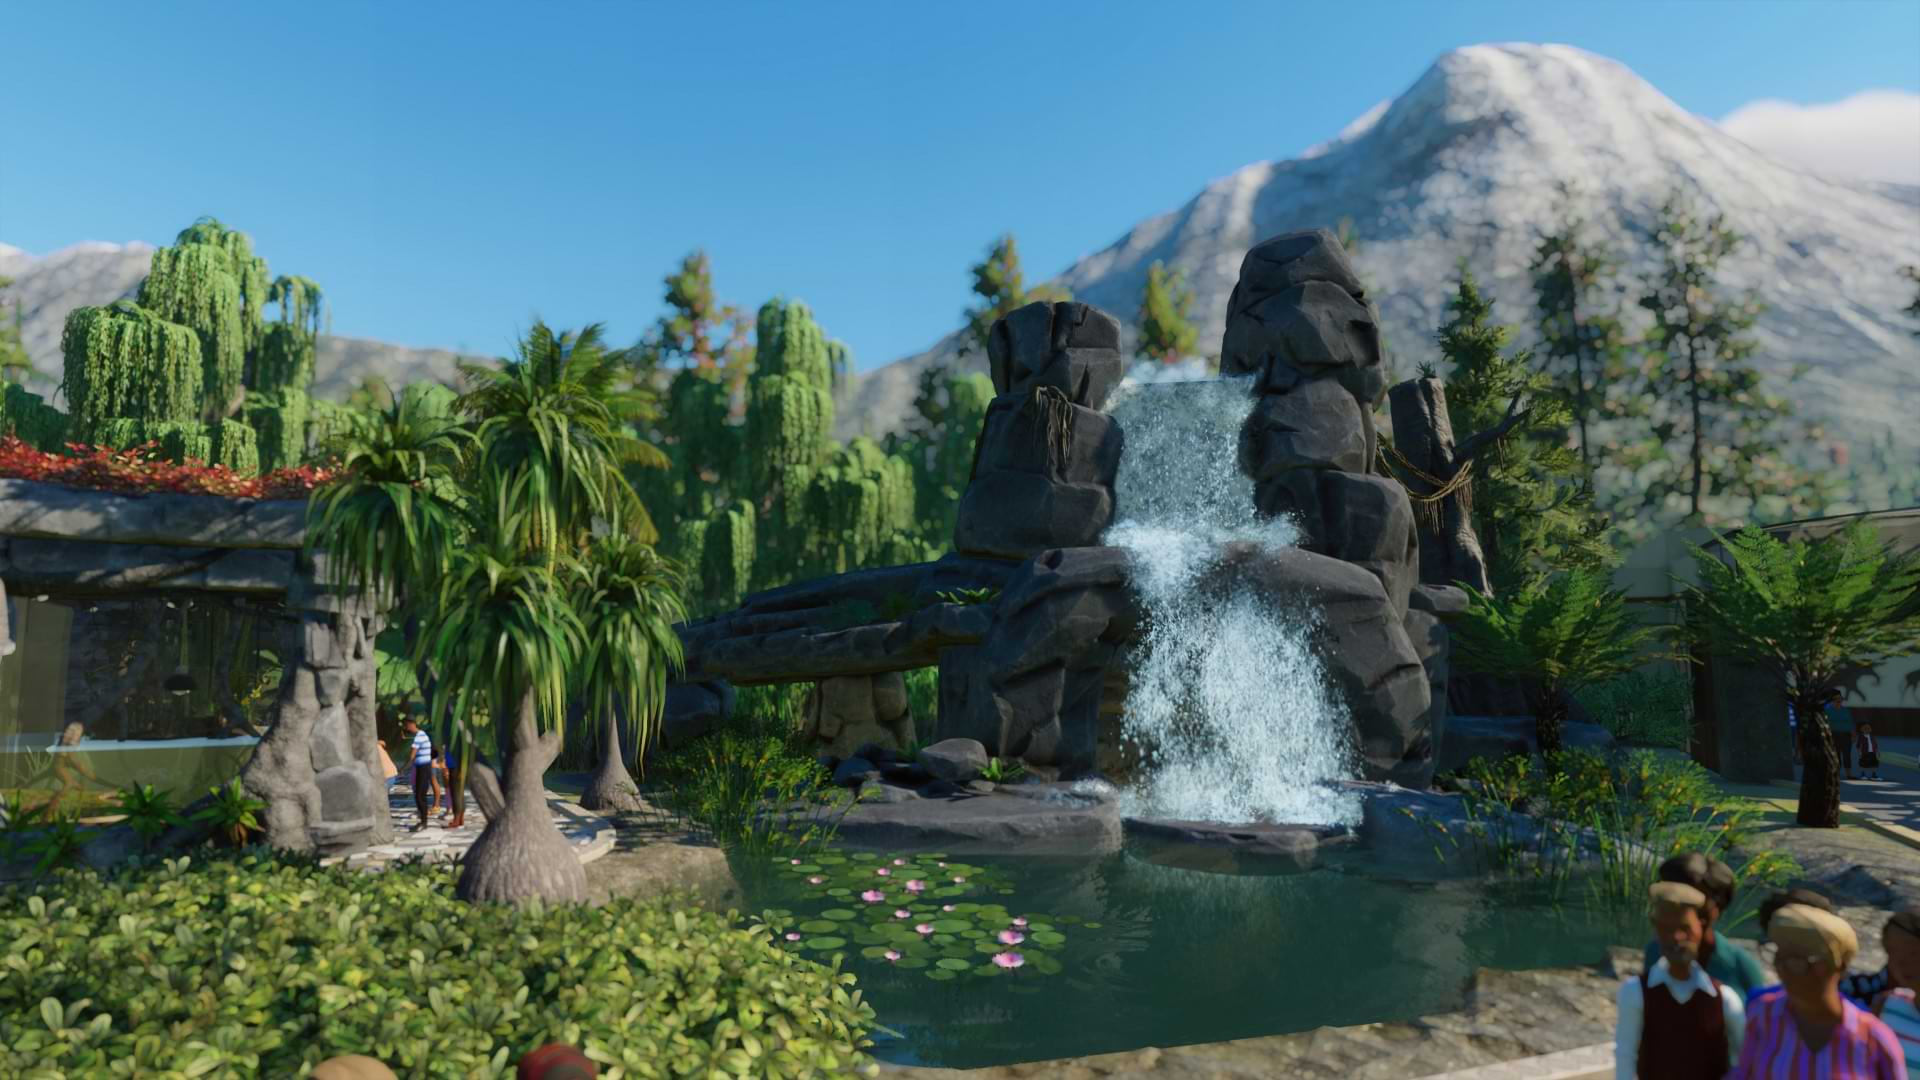 Planet Zoo Aquatic Pack - Don't go chasing